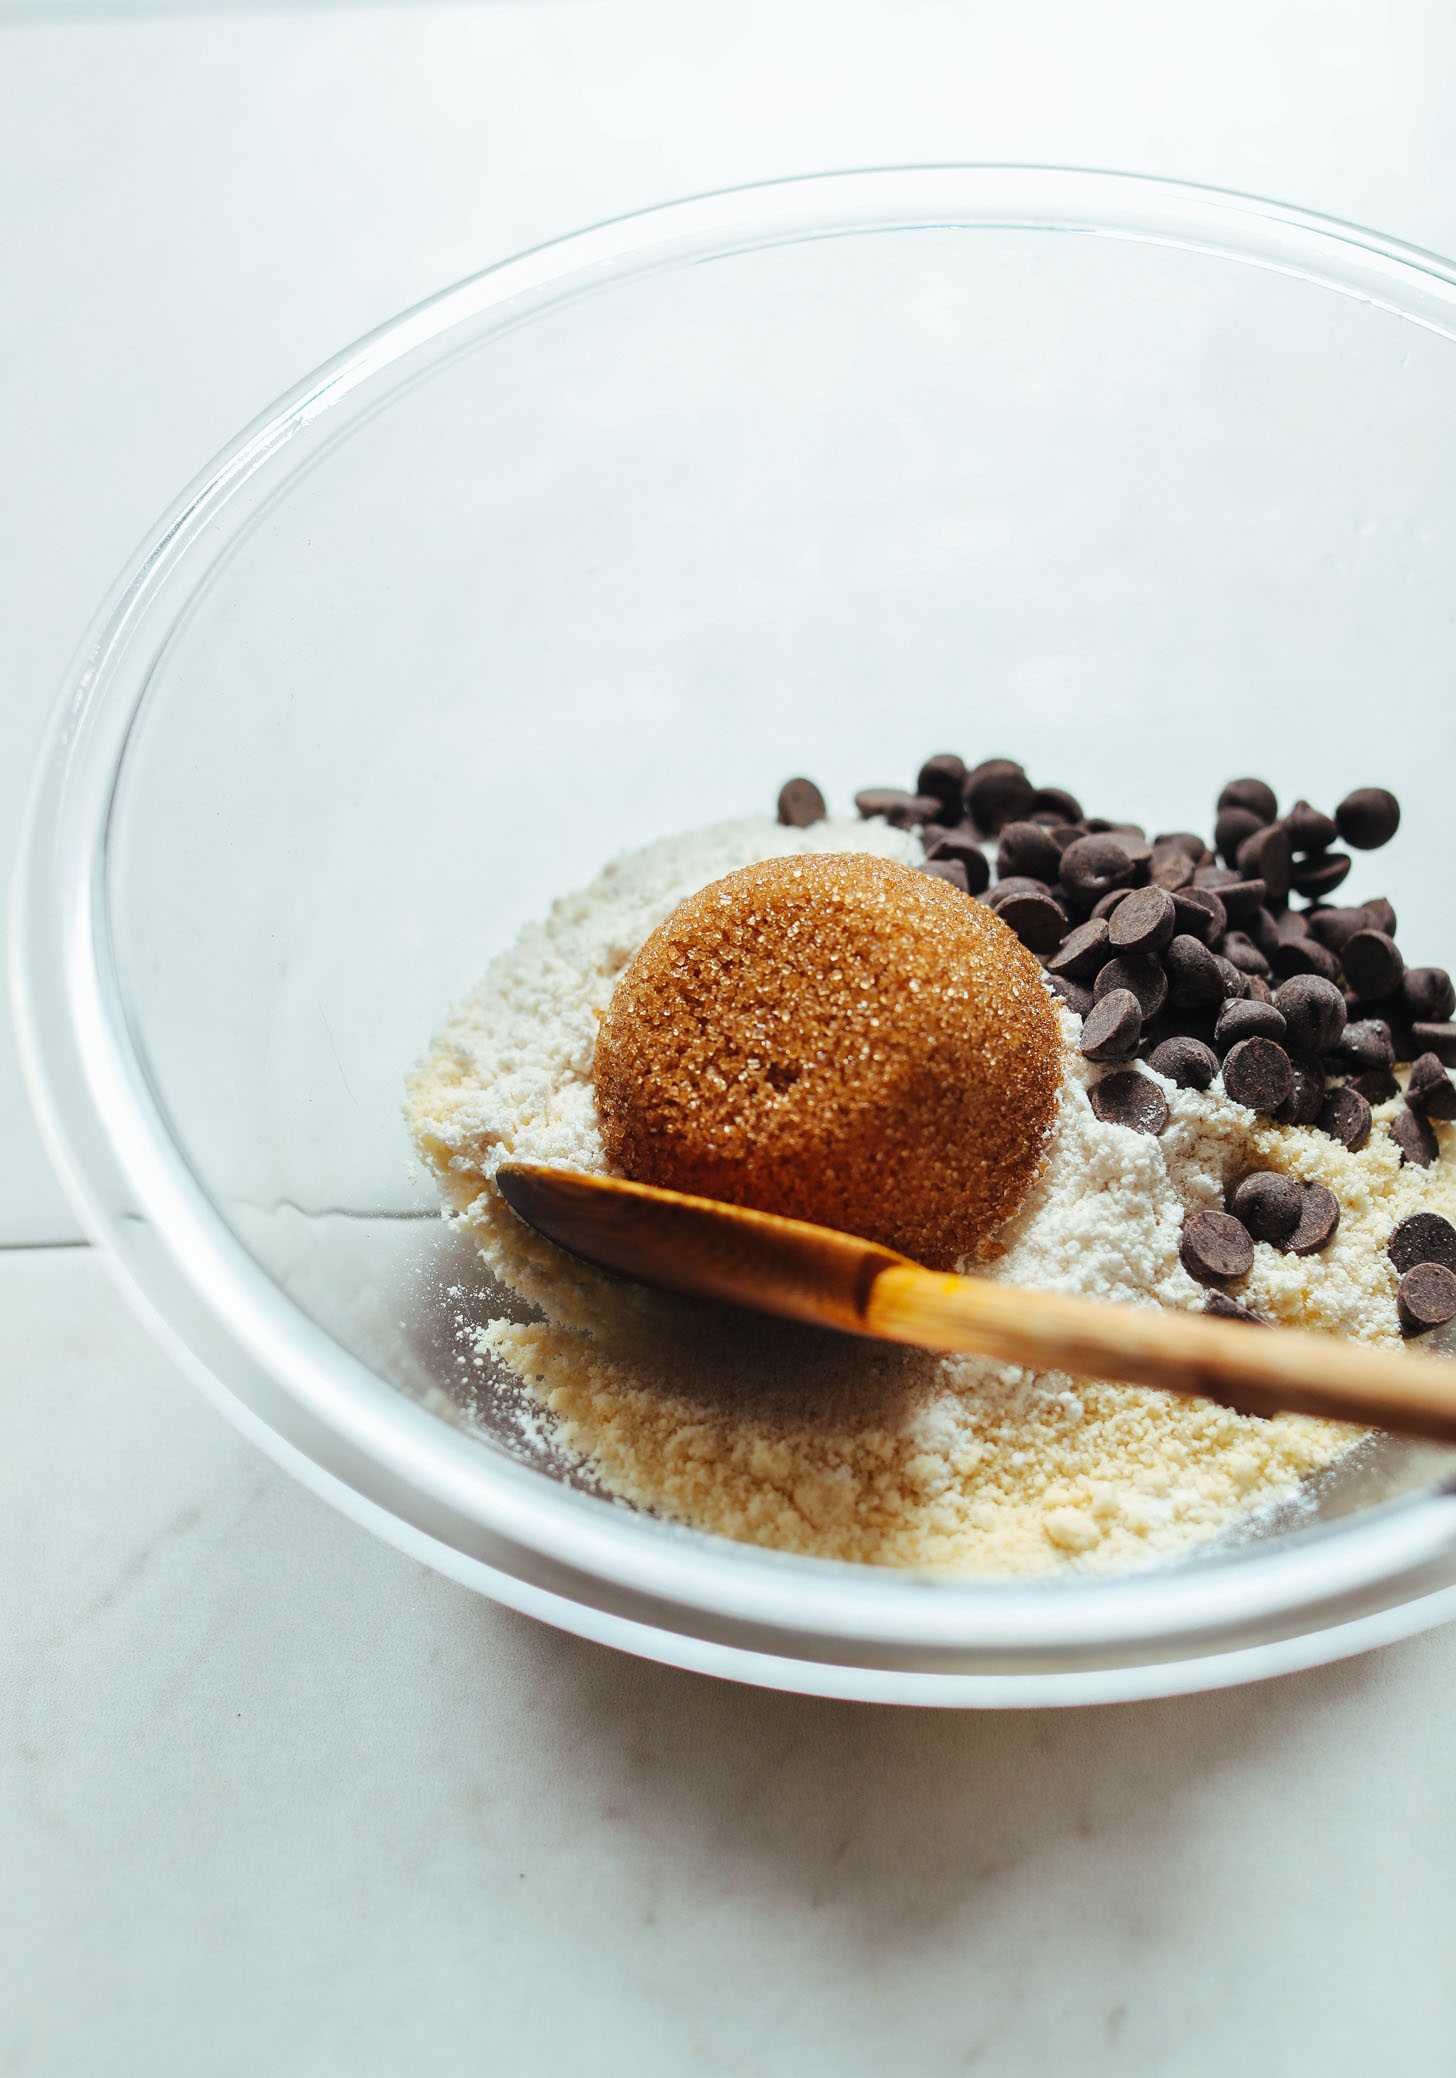 Bowl with dry ingredients for incredible gluten-free vegan chocolate chip cookies